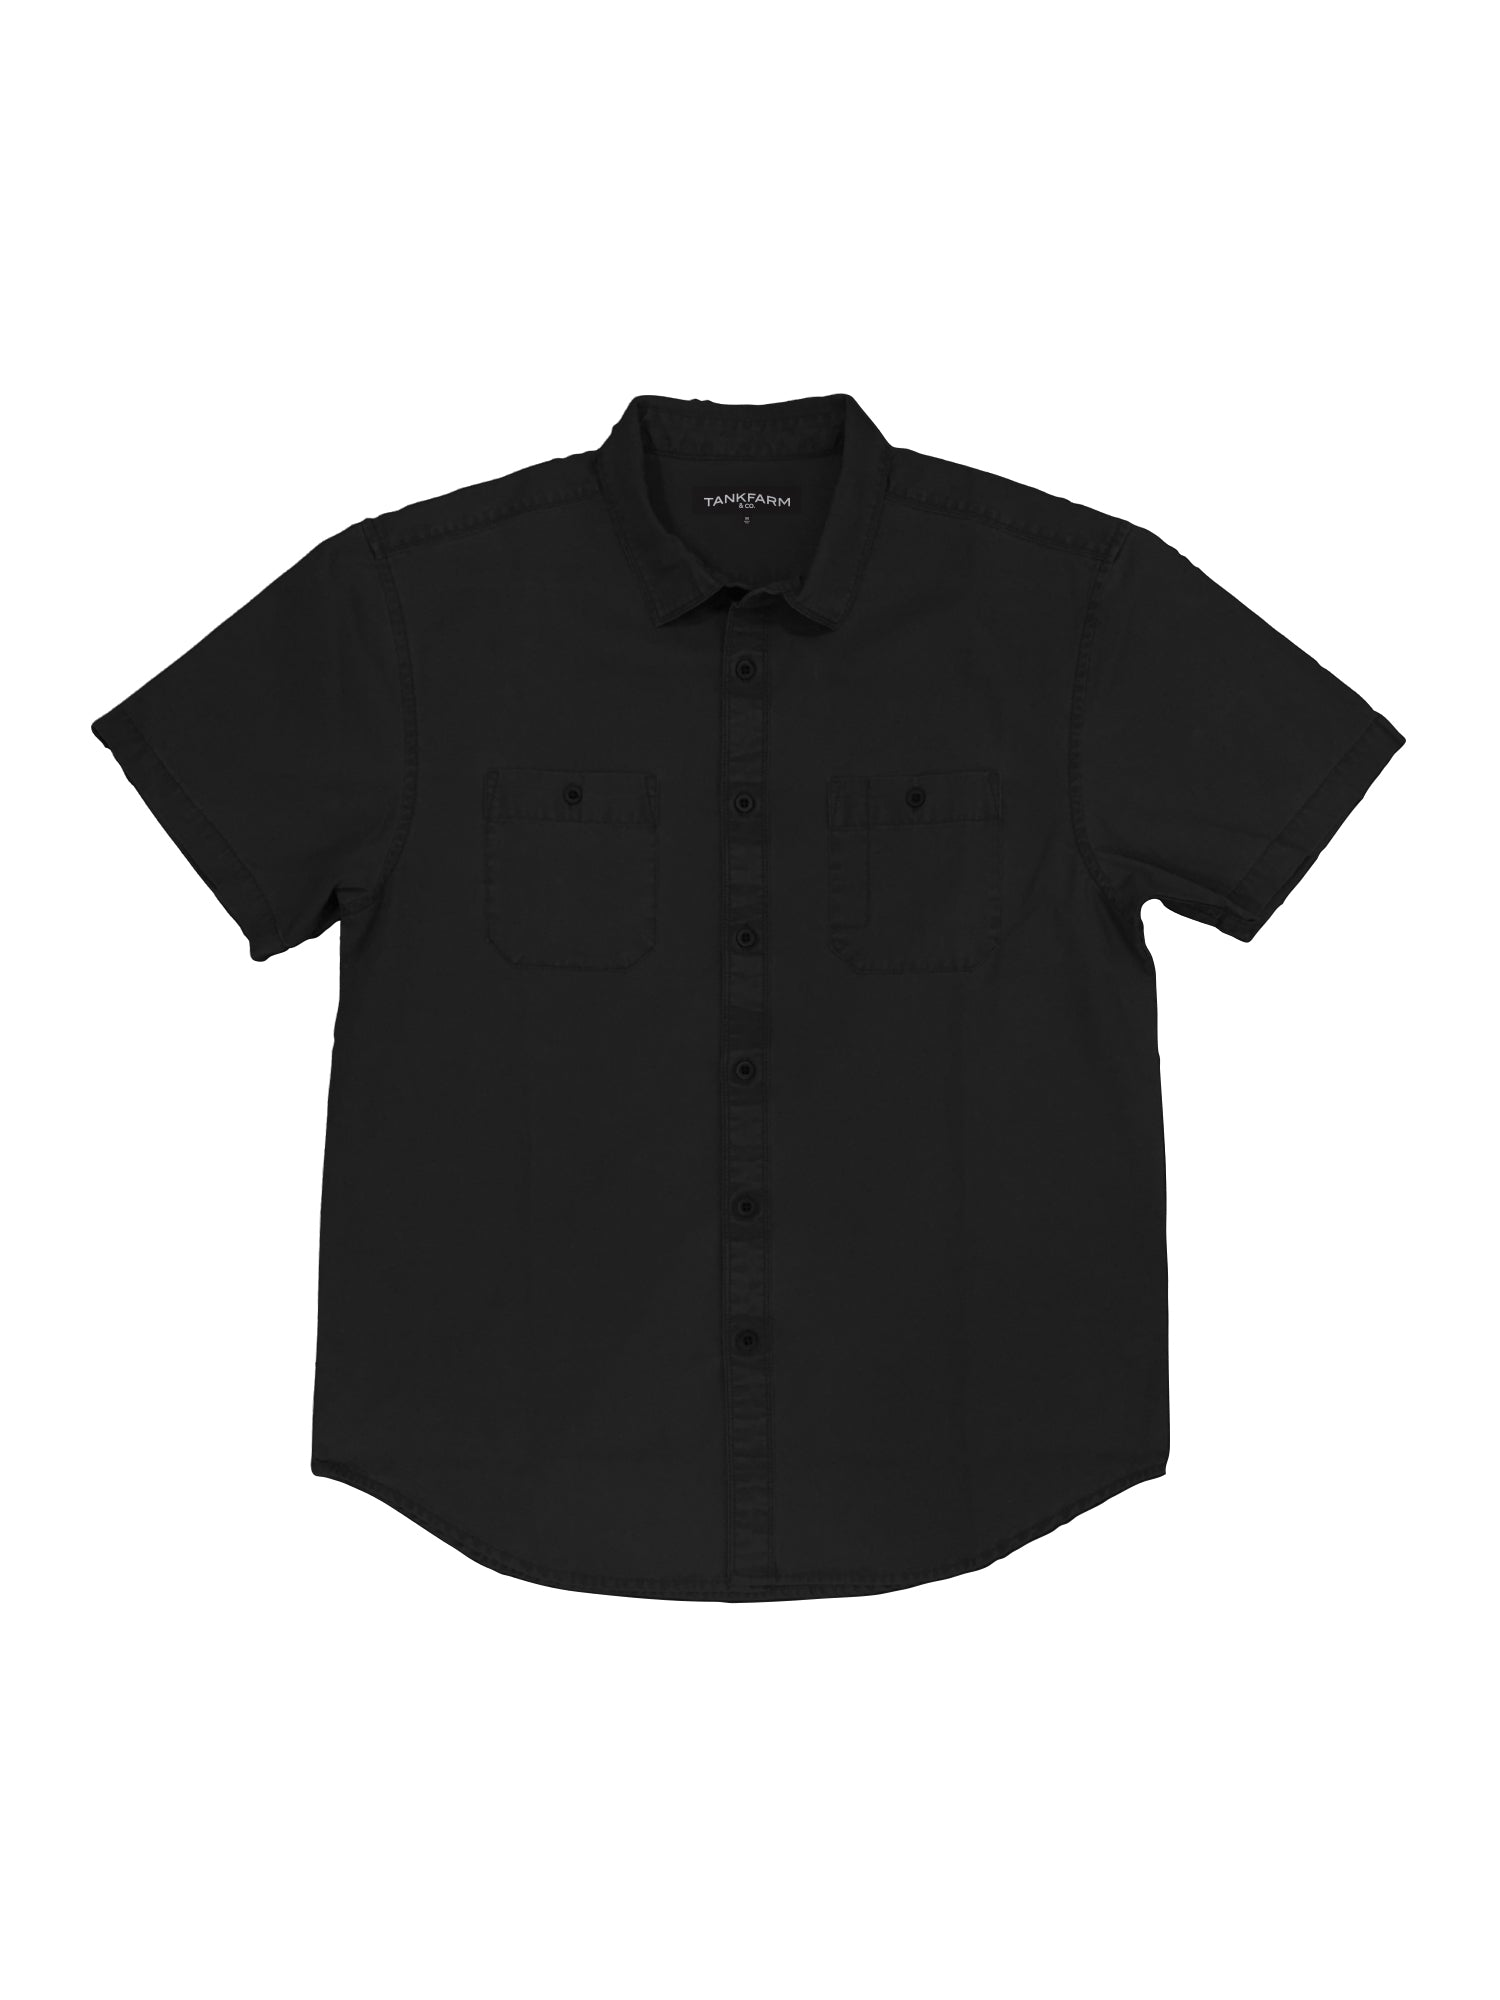 BLACK WORK SHIRT - Anderson Bros Design and Supply